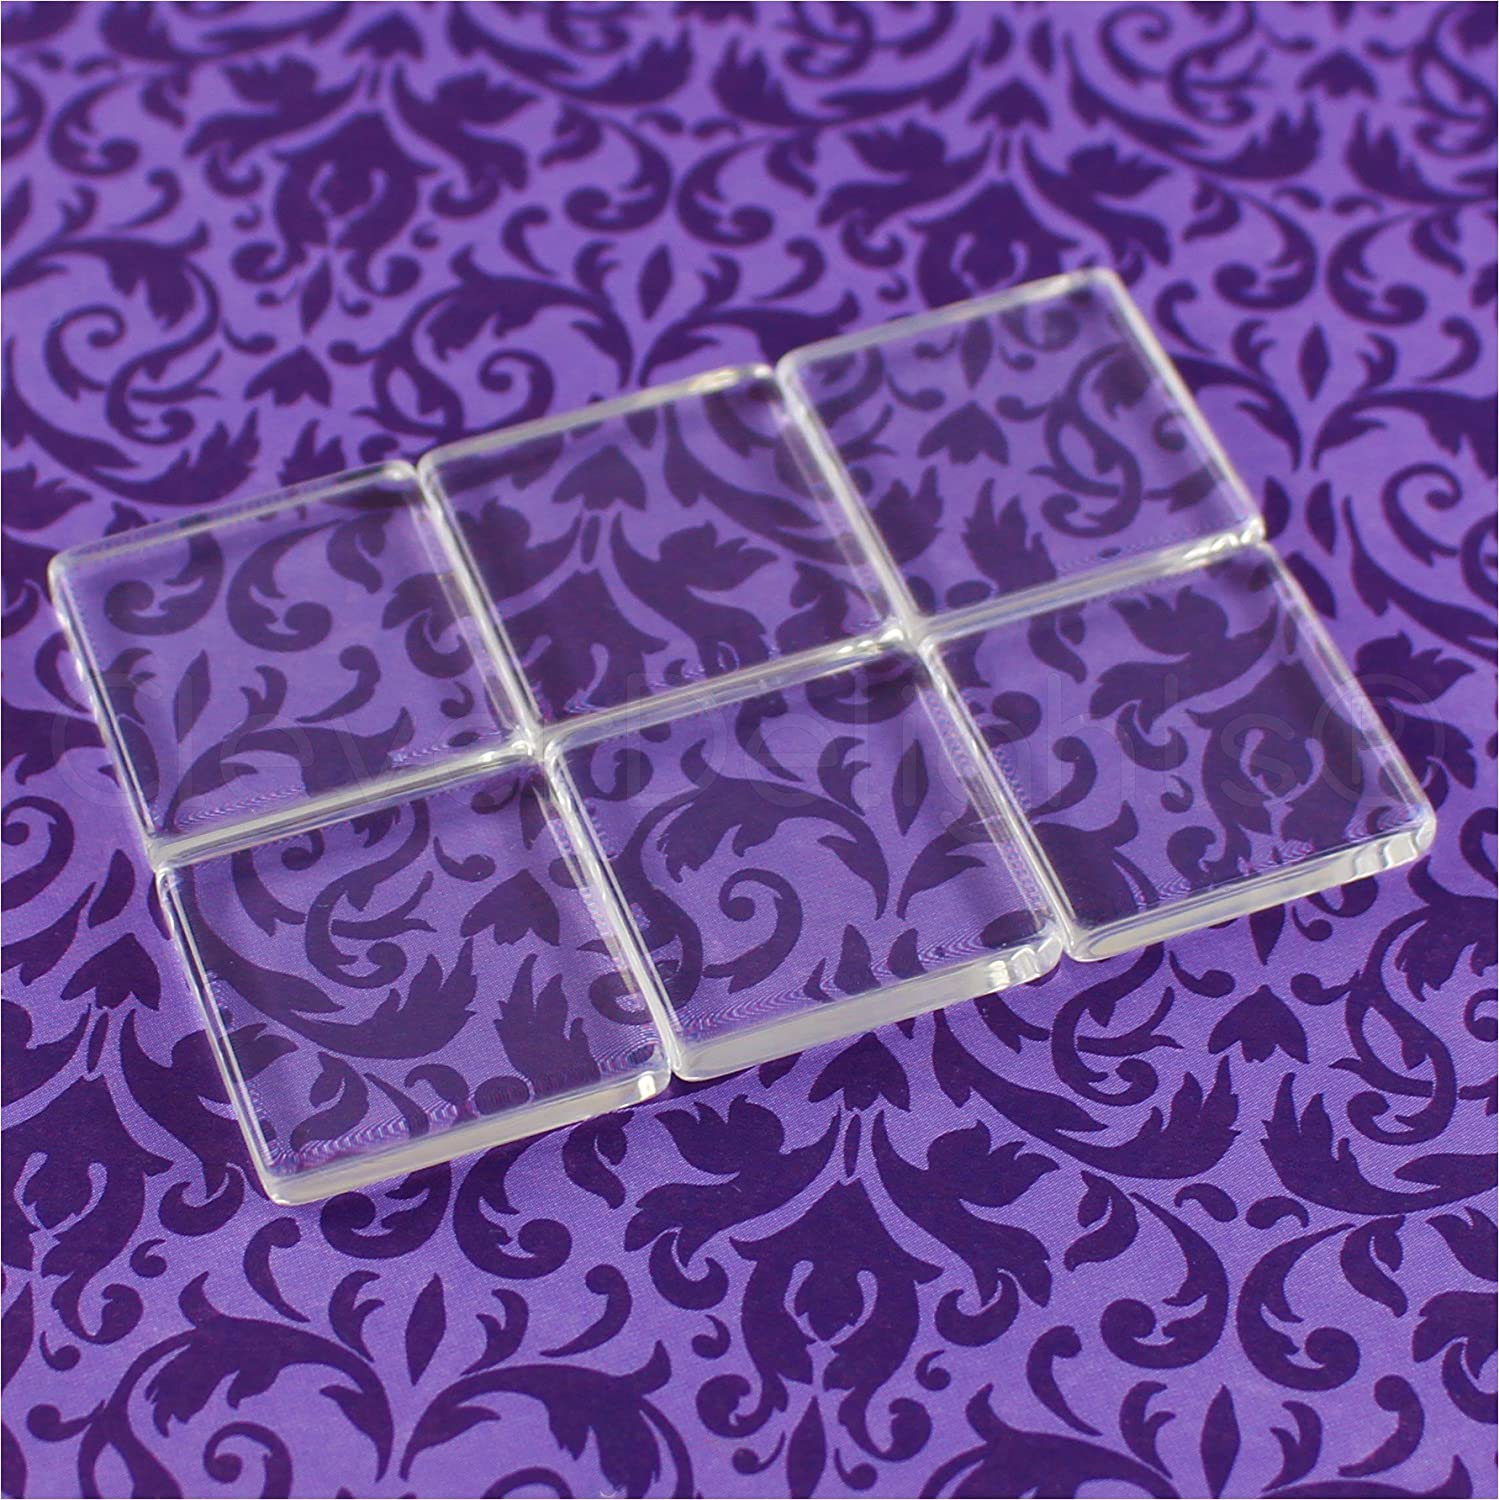 CleverDelights 10 Square Glass Tiles - 1 Inch - Clear Tiles - Glass Cabochons - for Photo Pendants Mosaics Trays - 1 25mm Tiles - 4mm Thick